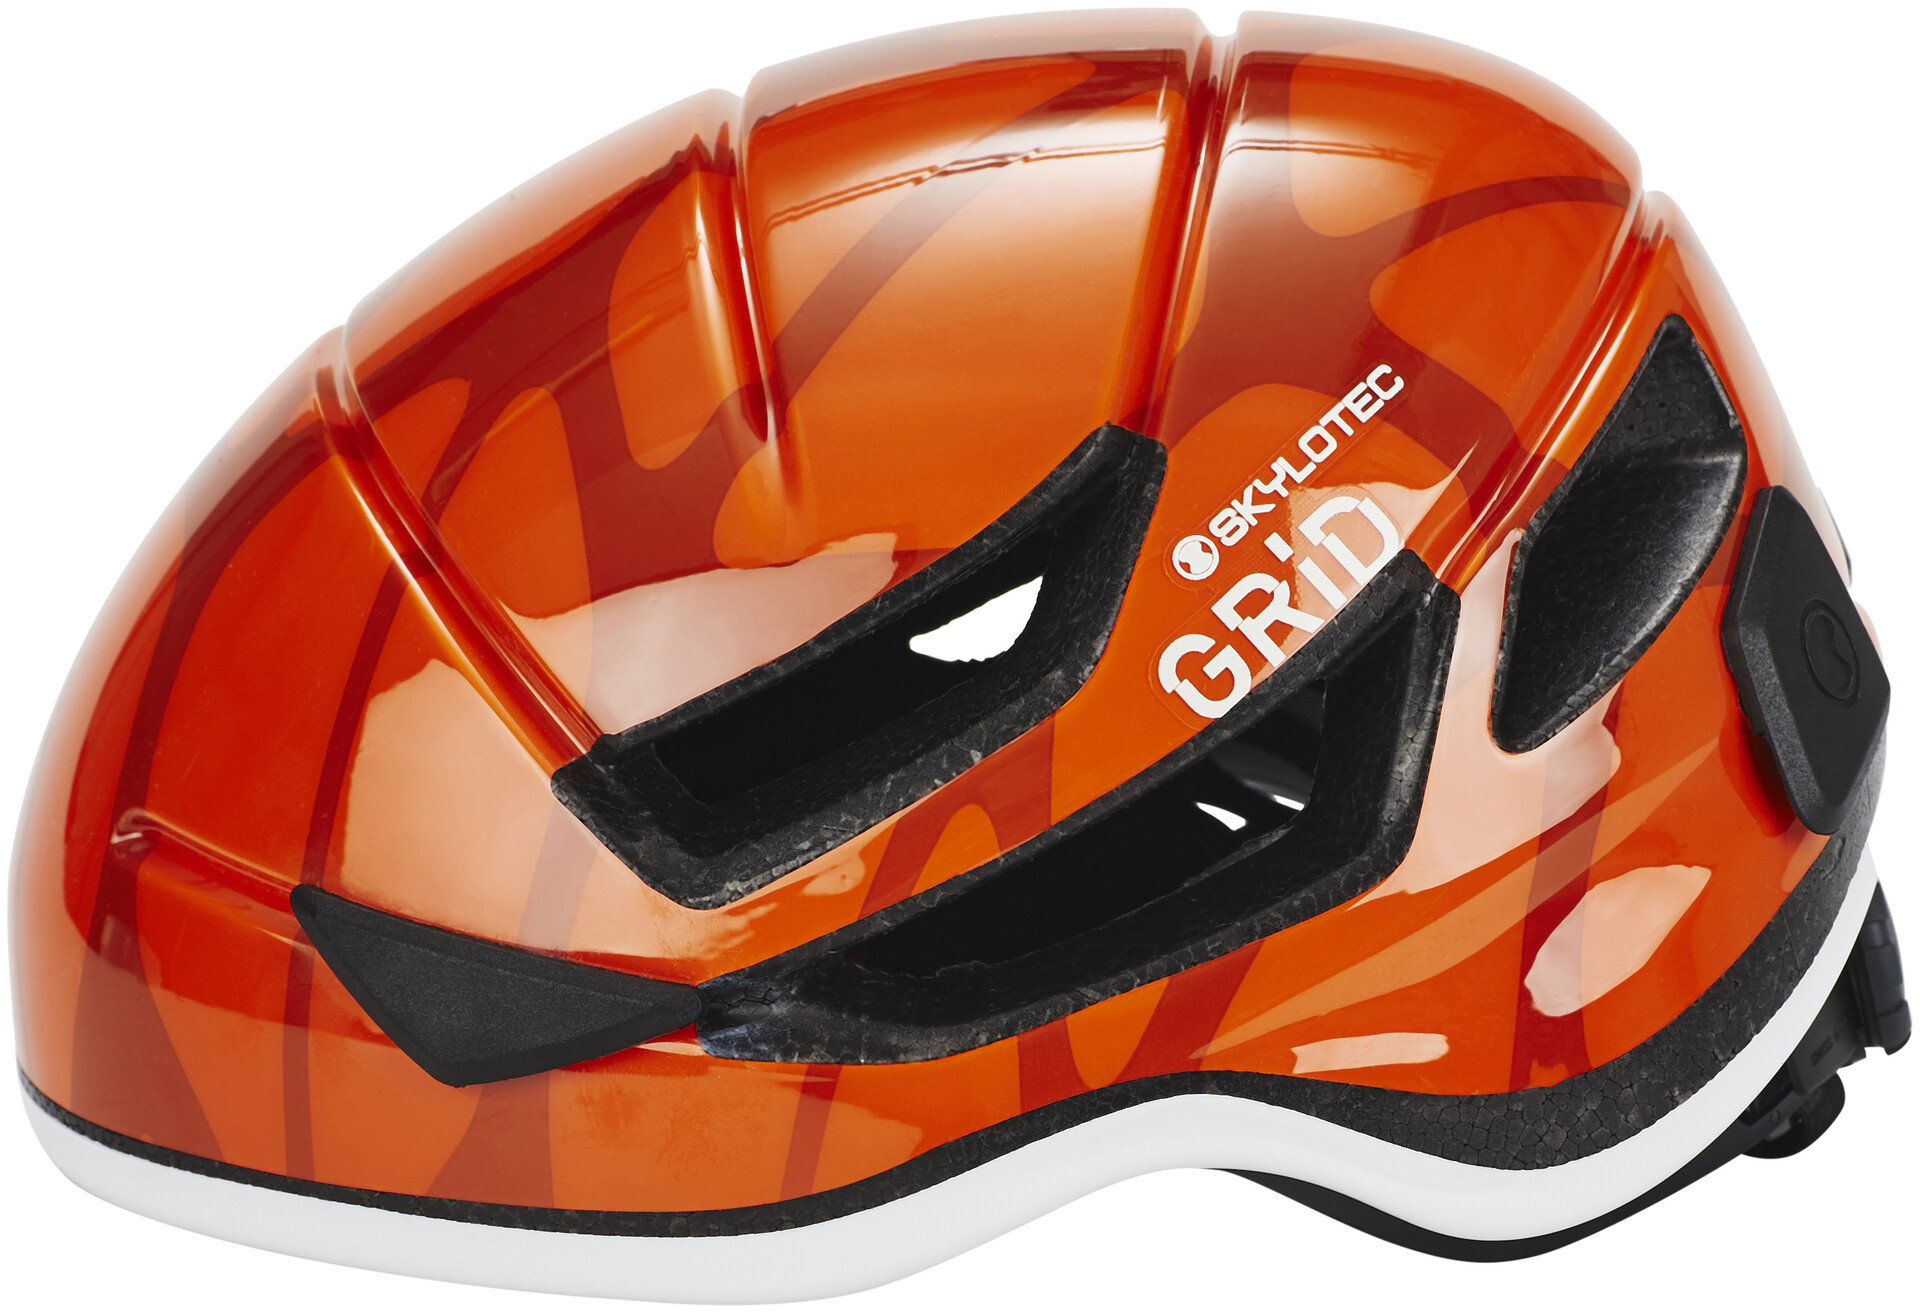 Skylotec Klettergurt : Skylotec grid vent helmet orange campz at